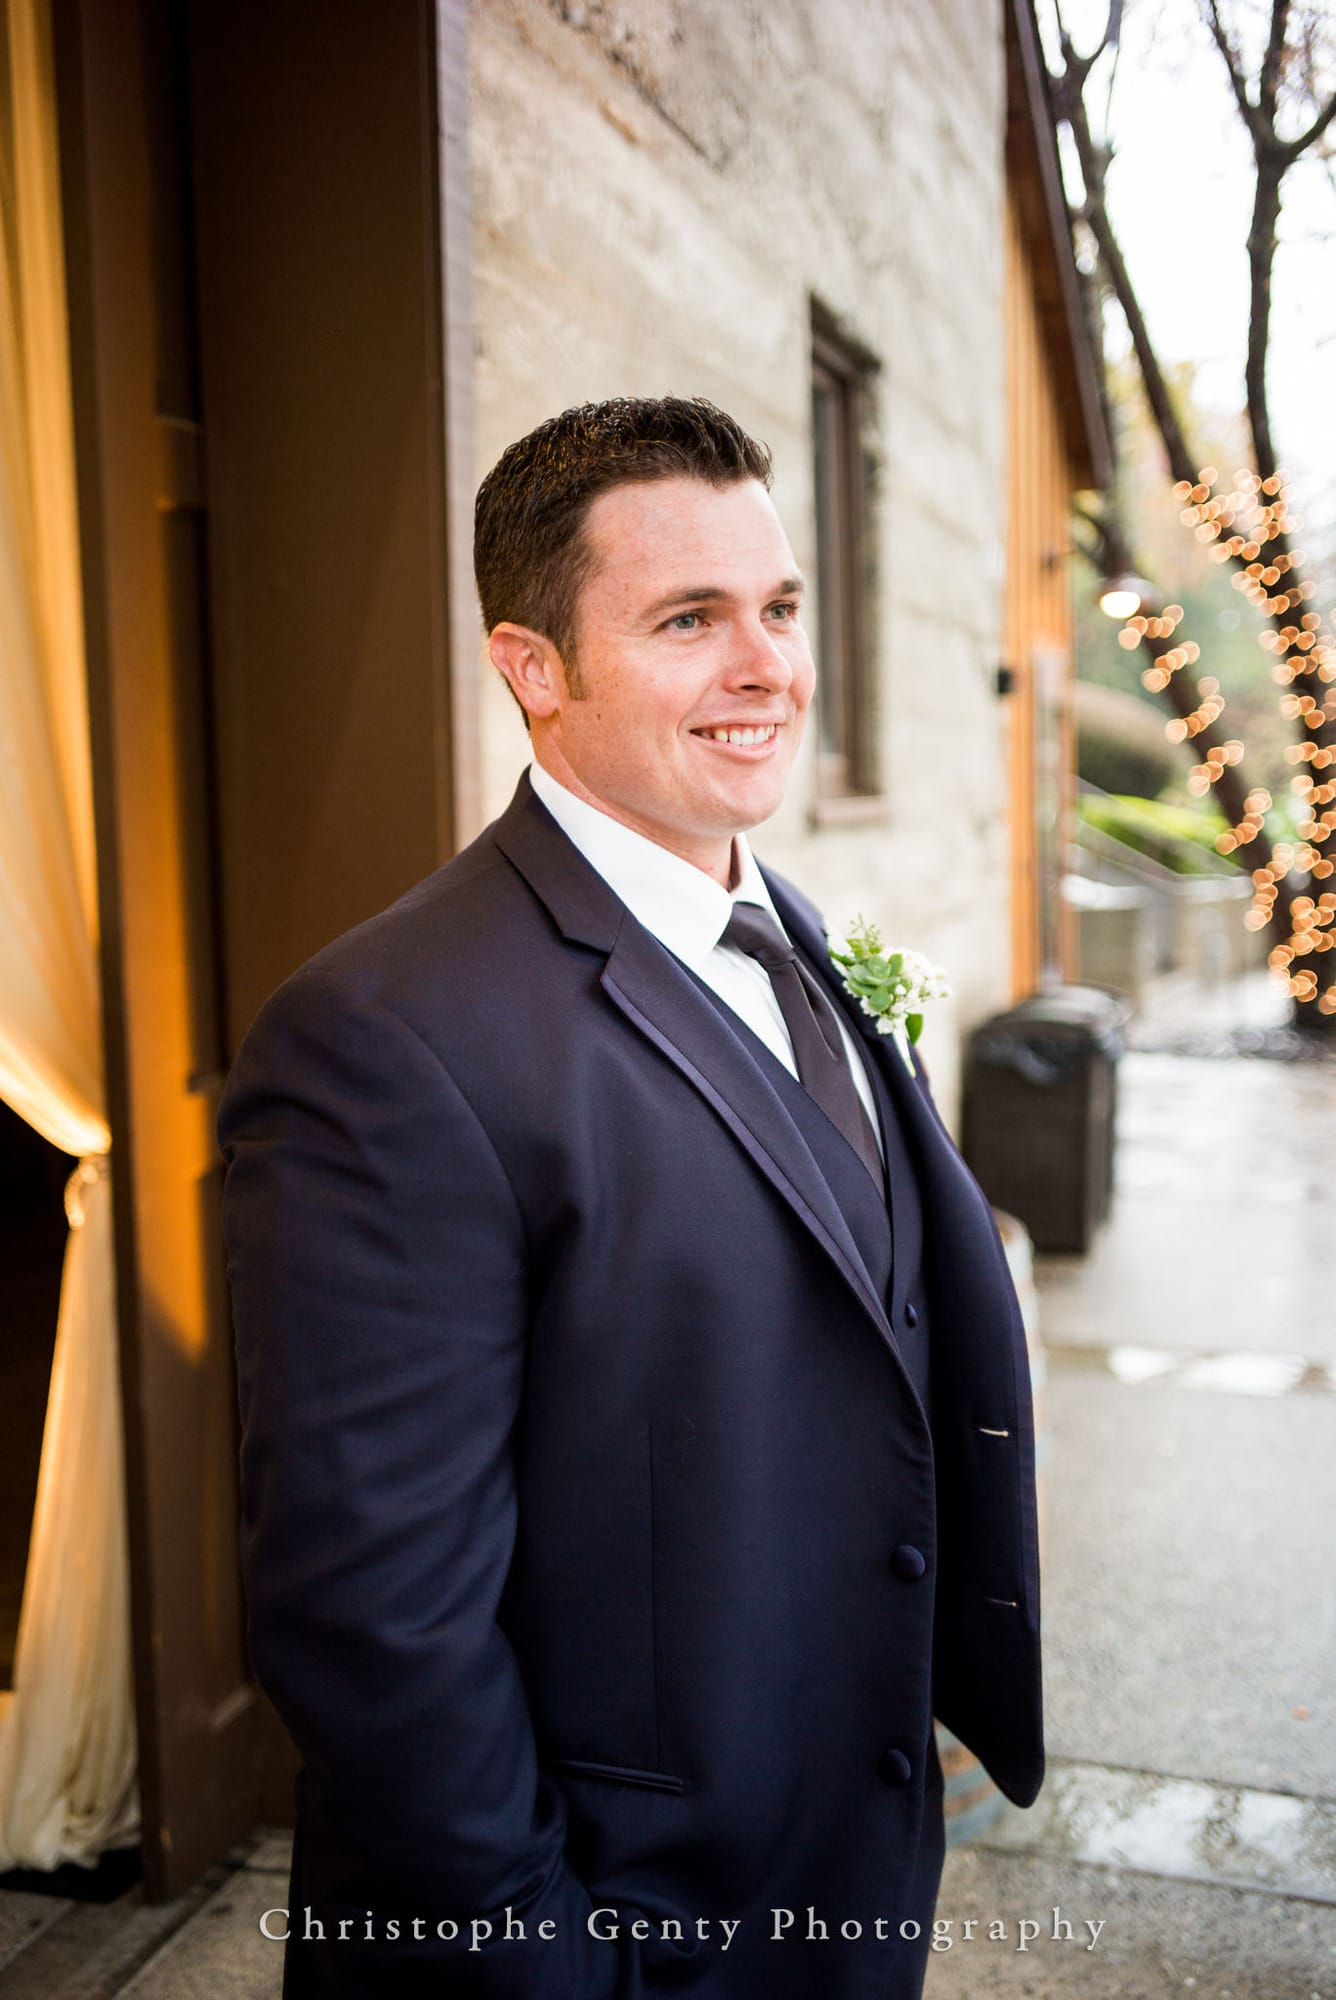 Murrieta's Well wedding photography in Livermore